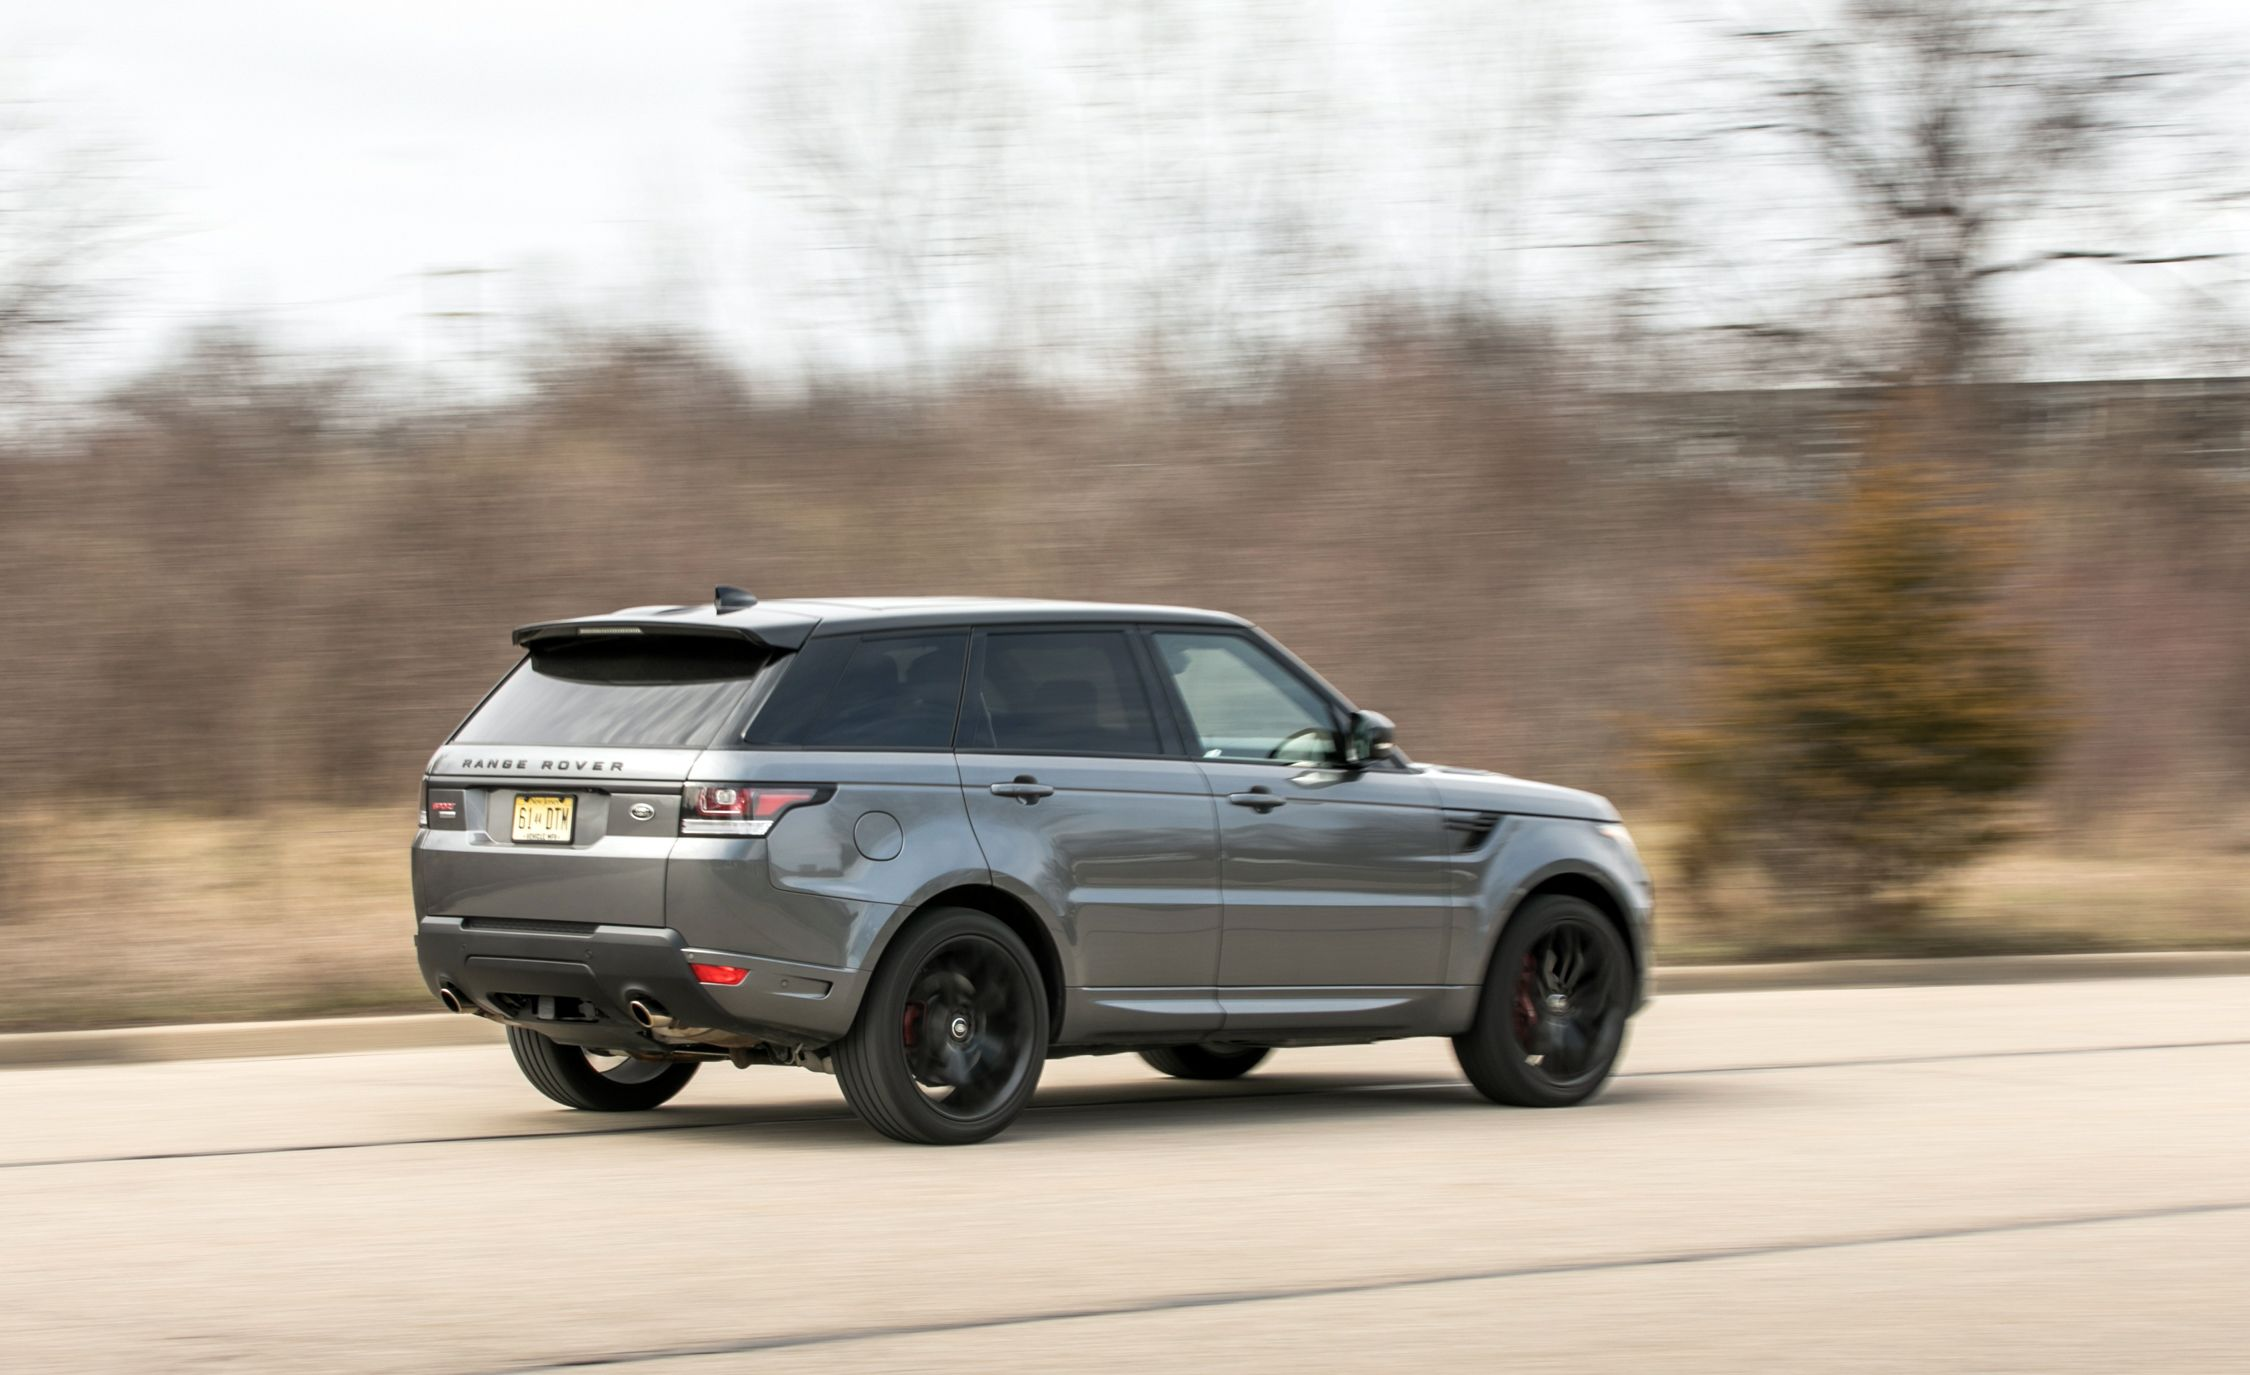 2017 land rover range rover sport supercharged svr. Black Bedroom Furniture Sets. Home Design Ideas